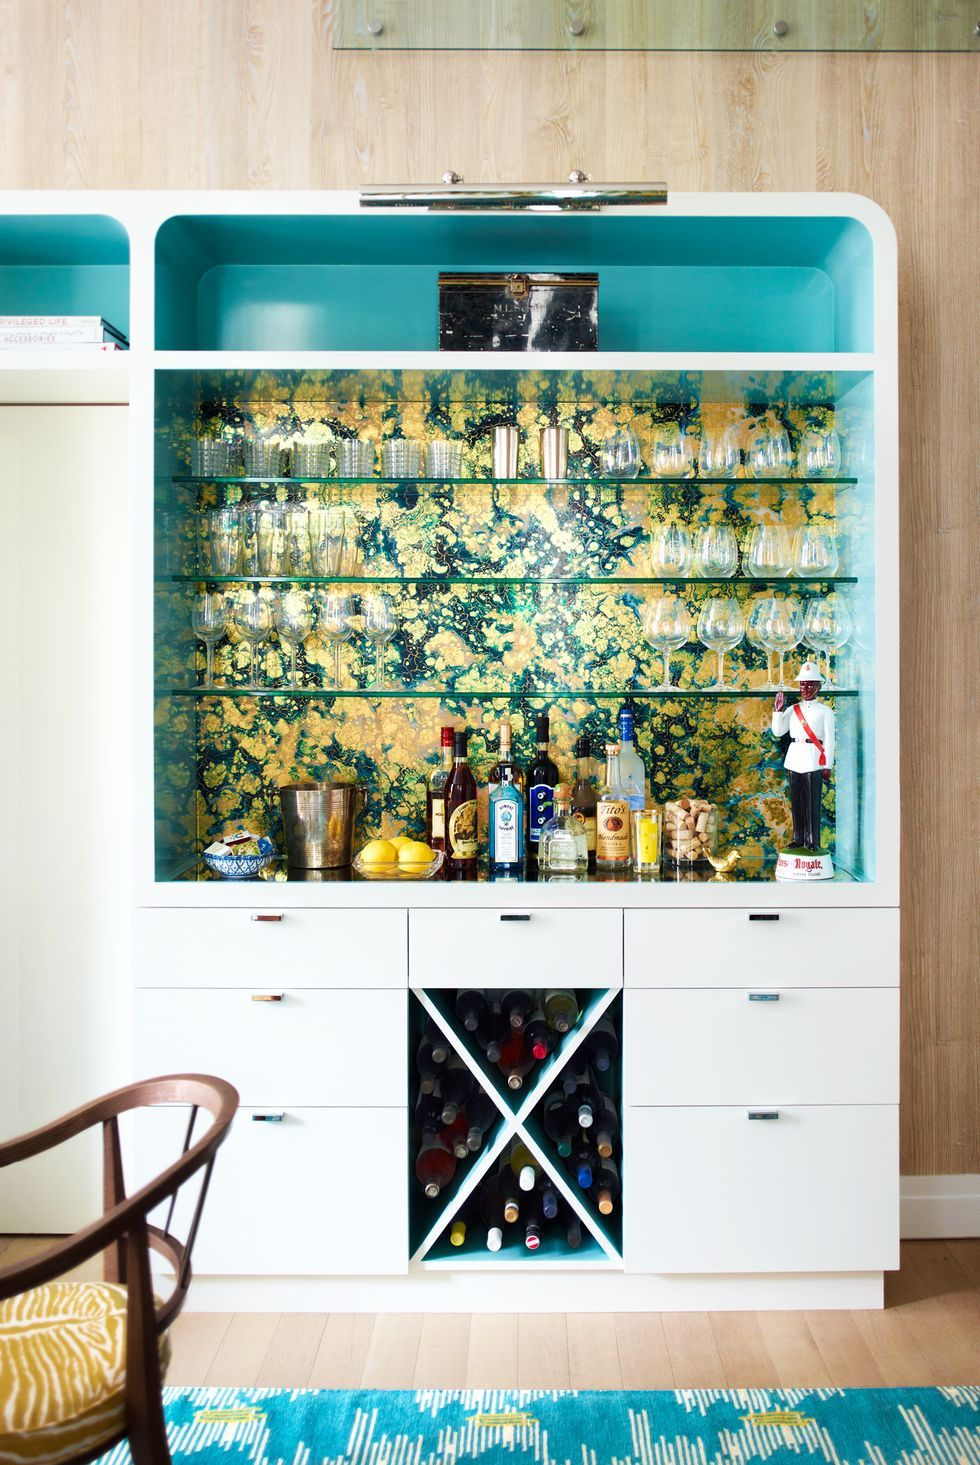 13 Creative Ways To Use Peel And Stick Wallpaper Home Remodeling Decor Bars For Home